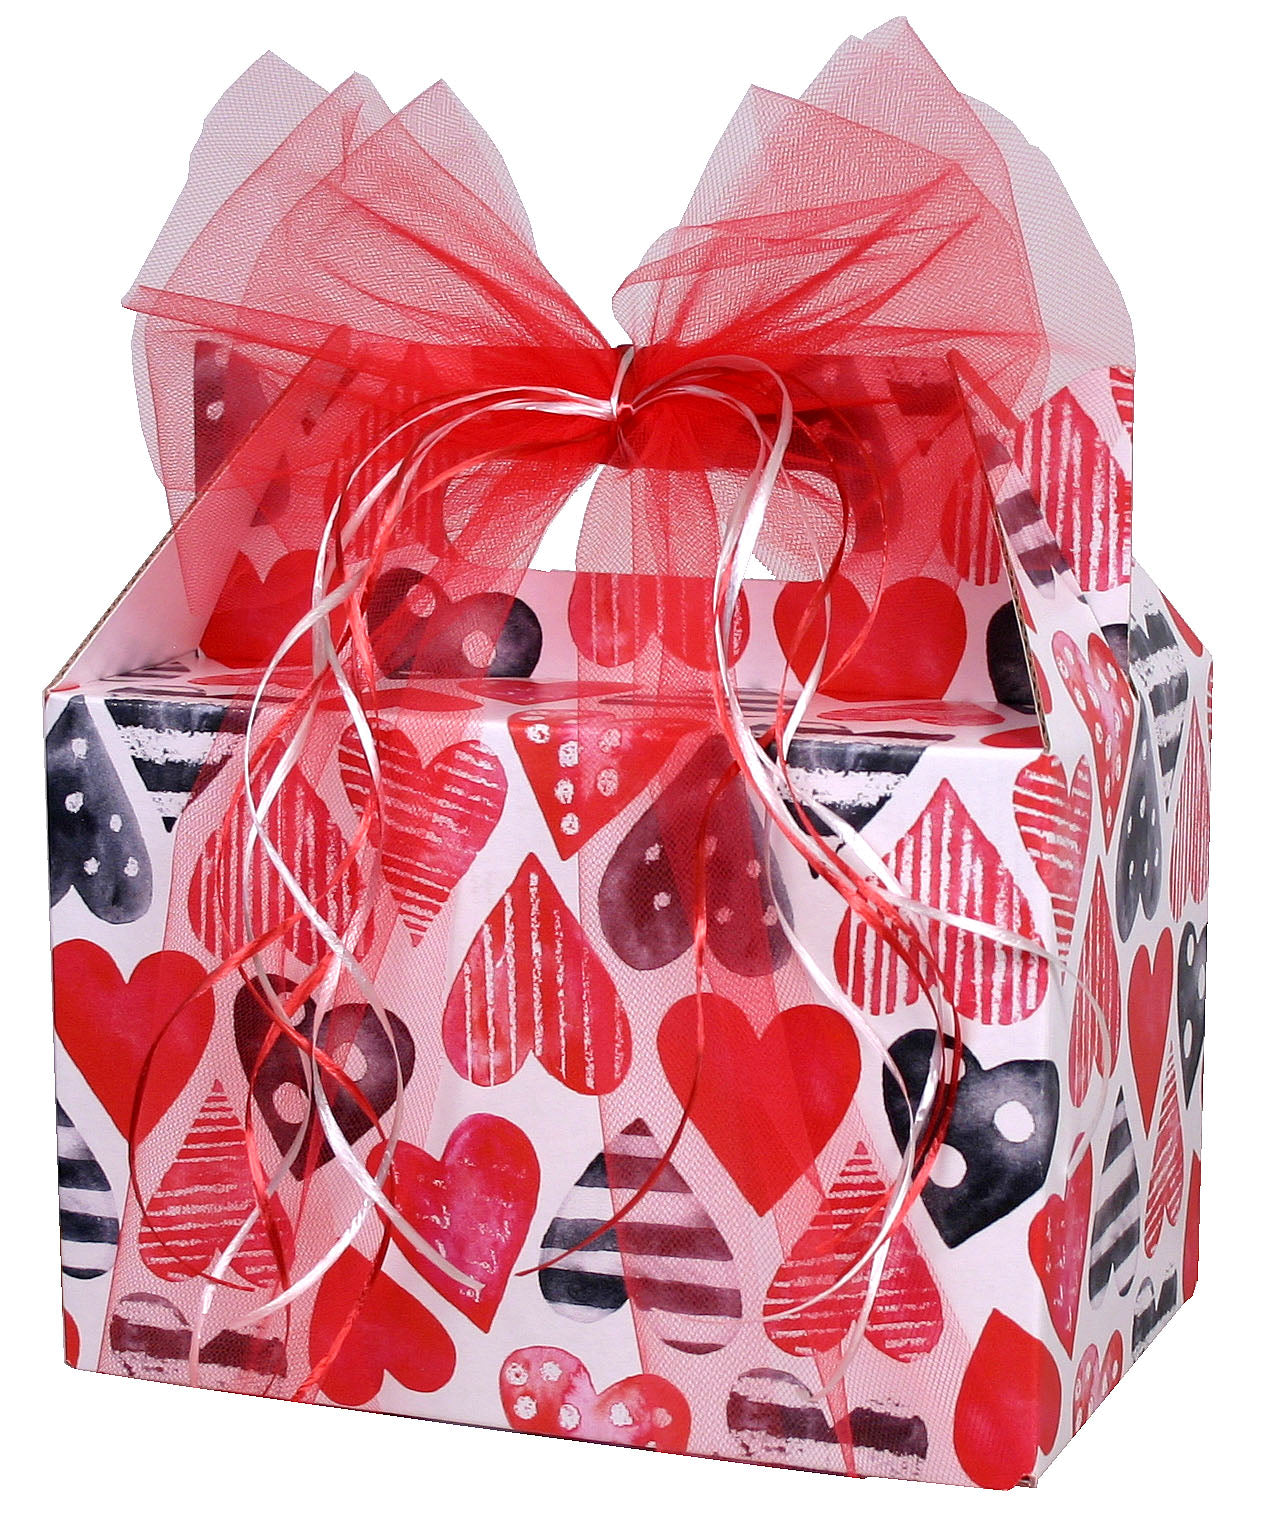 The Dude Valentine's Day Gift Basket - hipkits.com